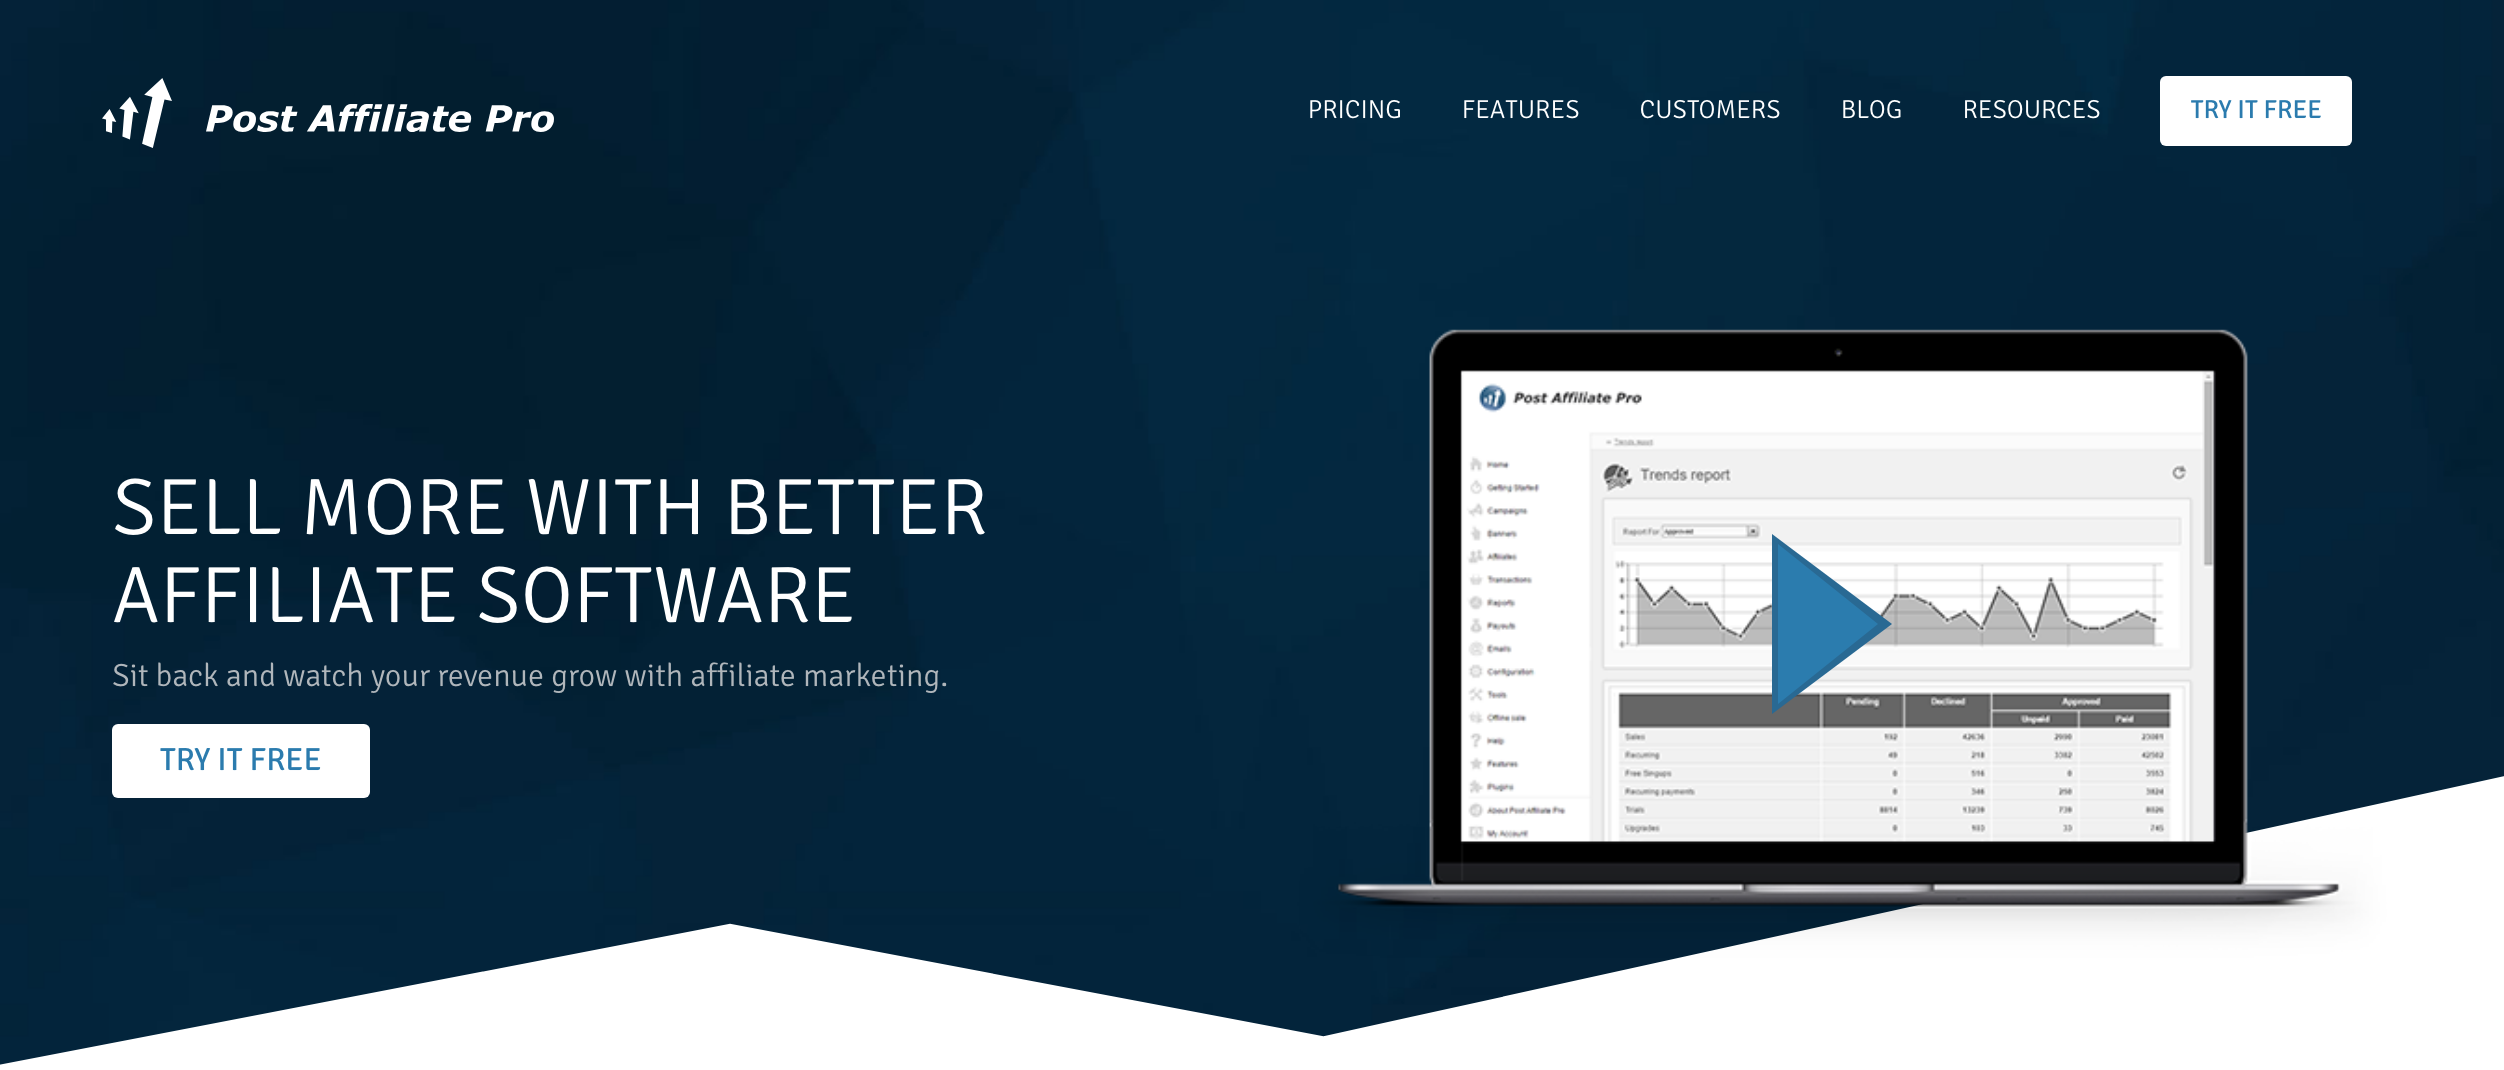 Affiliate Software By Post Affiliate Pro